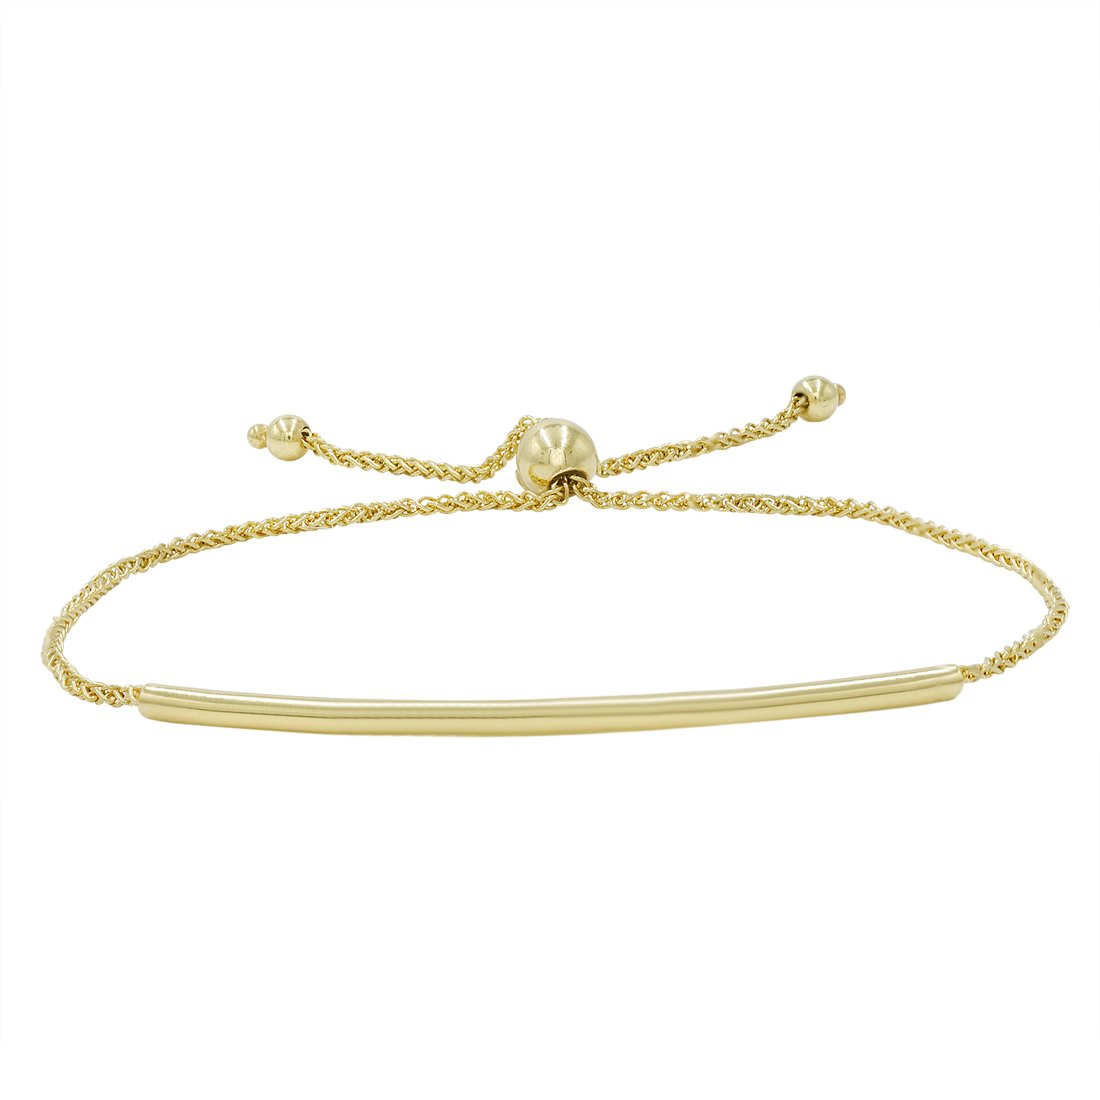 Amanda Rose Bar Bolo Bracelet in 14k Yellow Gold (Adjustable) by Amanda Rose Collection